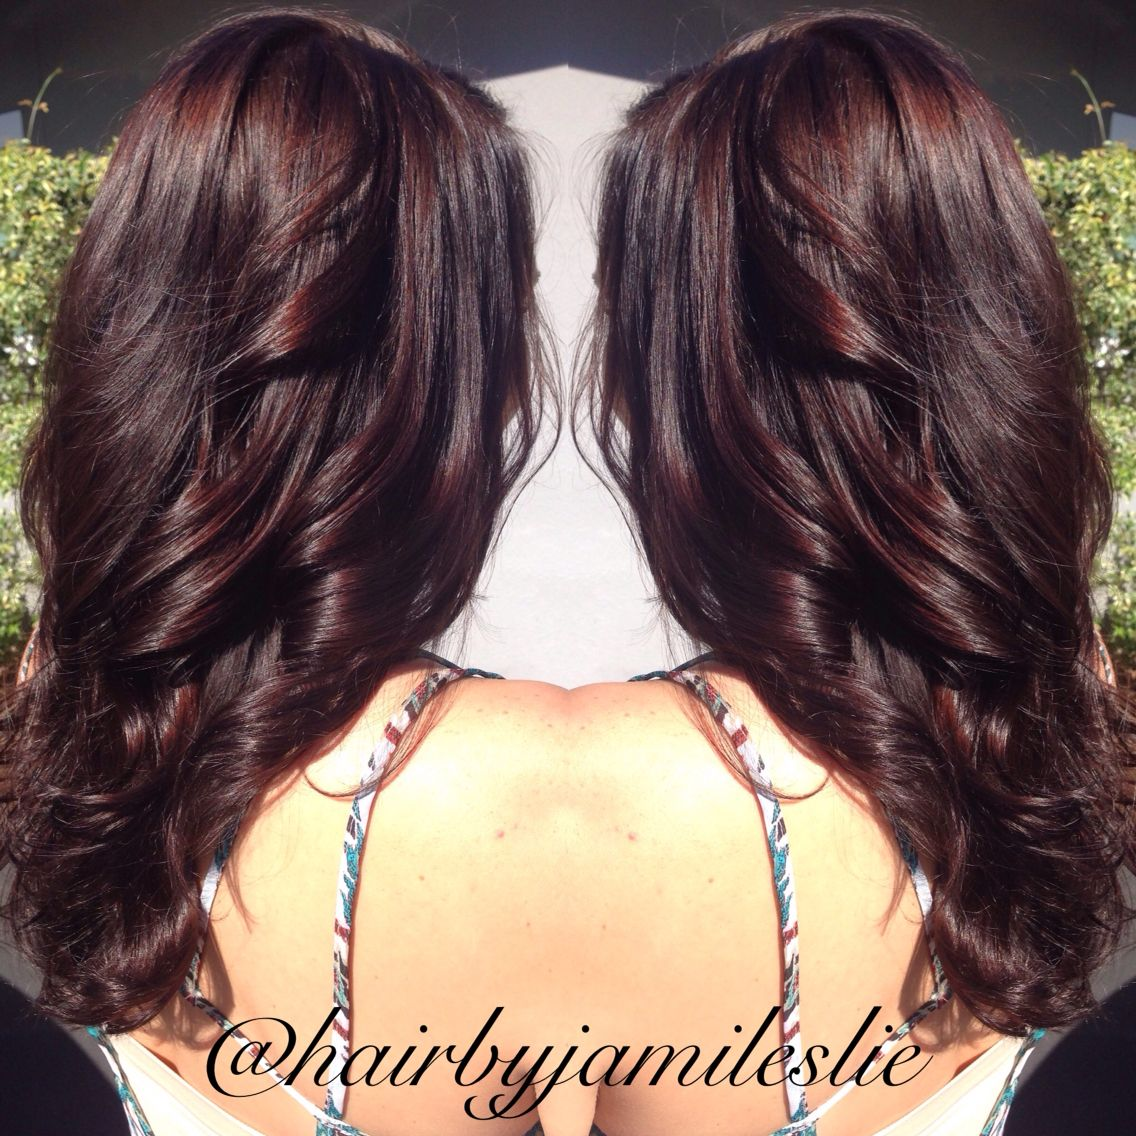 Watch - Hair Brown with mahogany highlights video